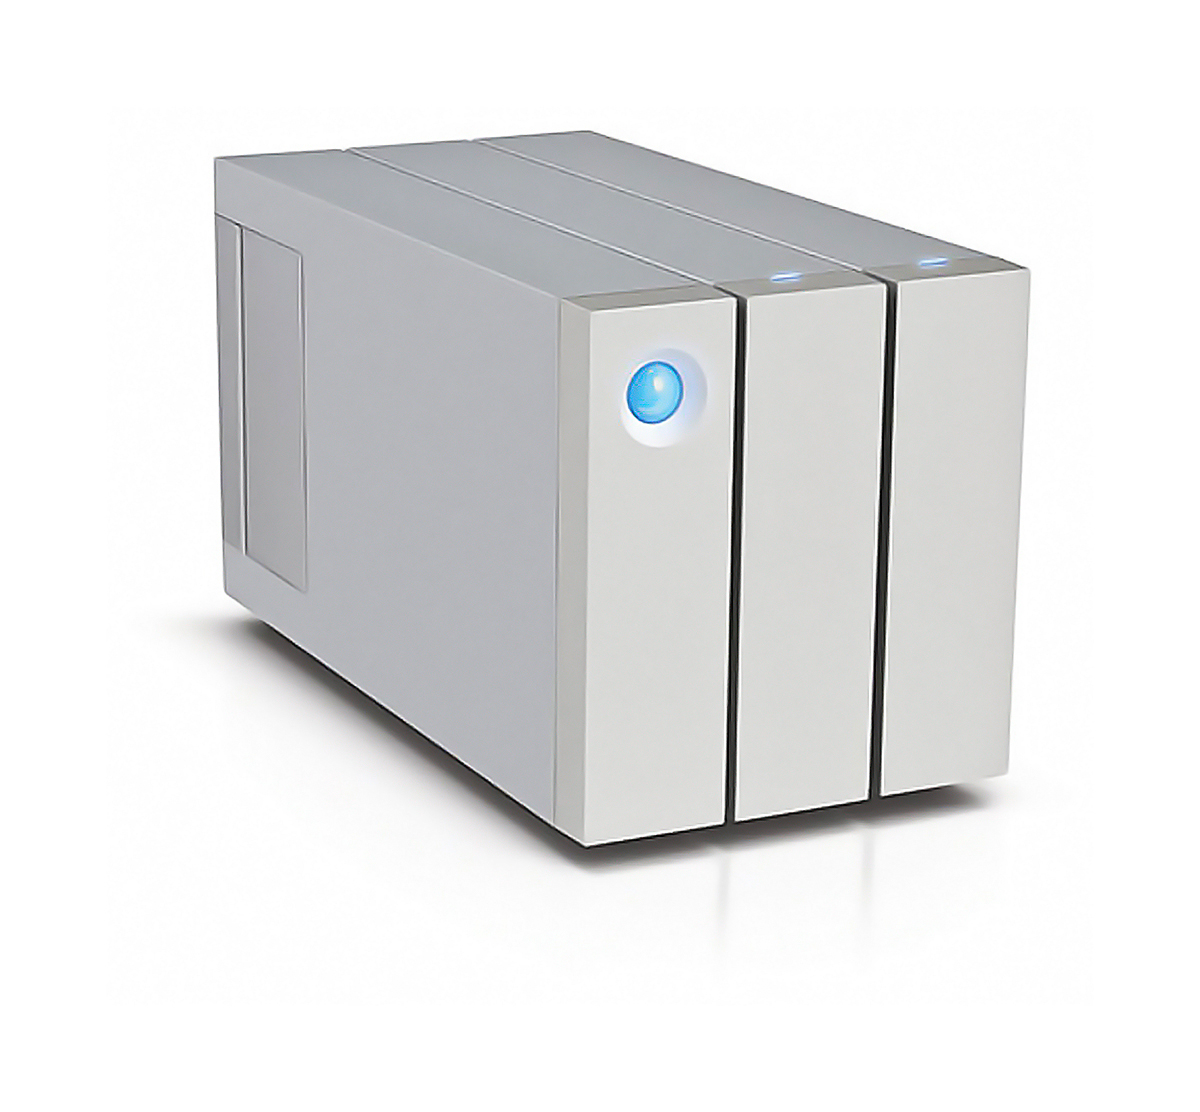 6TB LaCie 2big External Storage Dual Thunderbolt 2 Series 7200rpm (STEY6000200) by LaCie